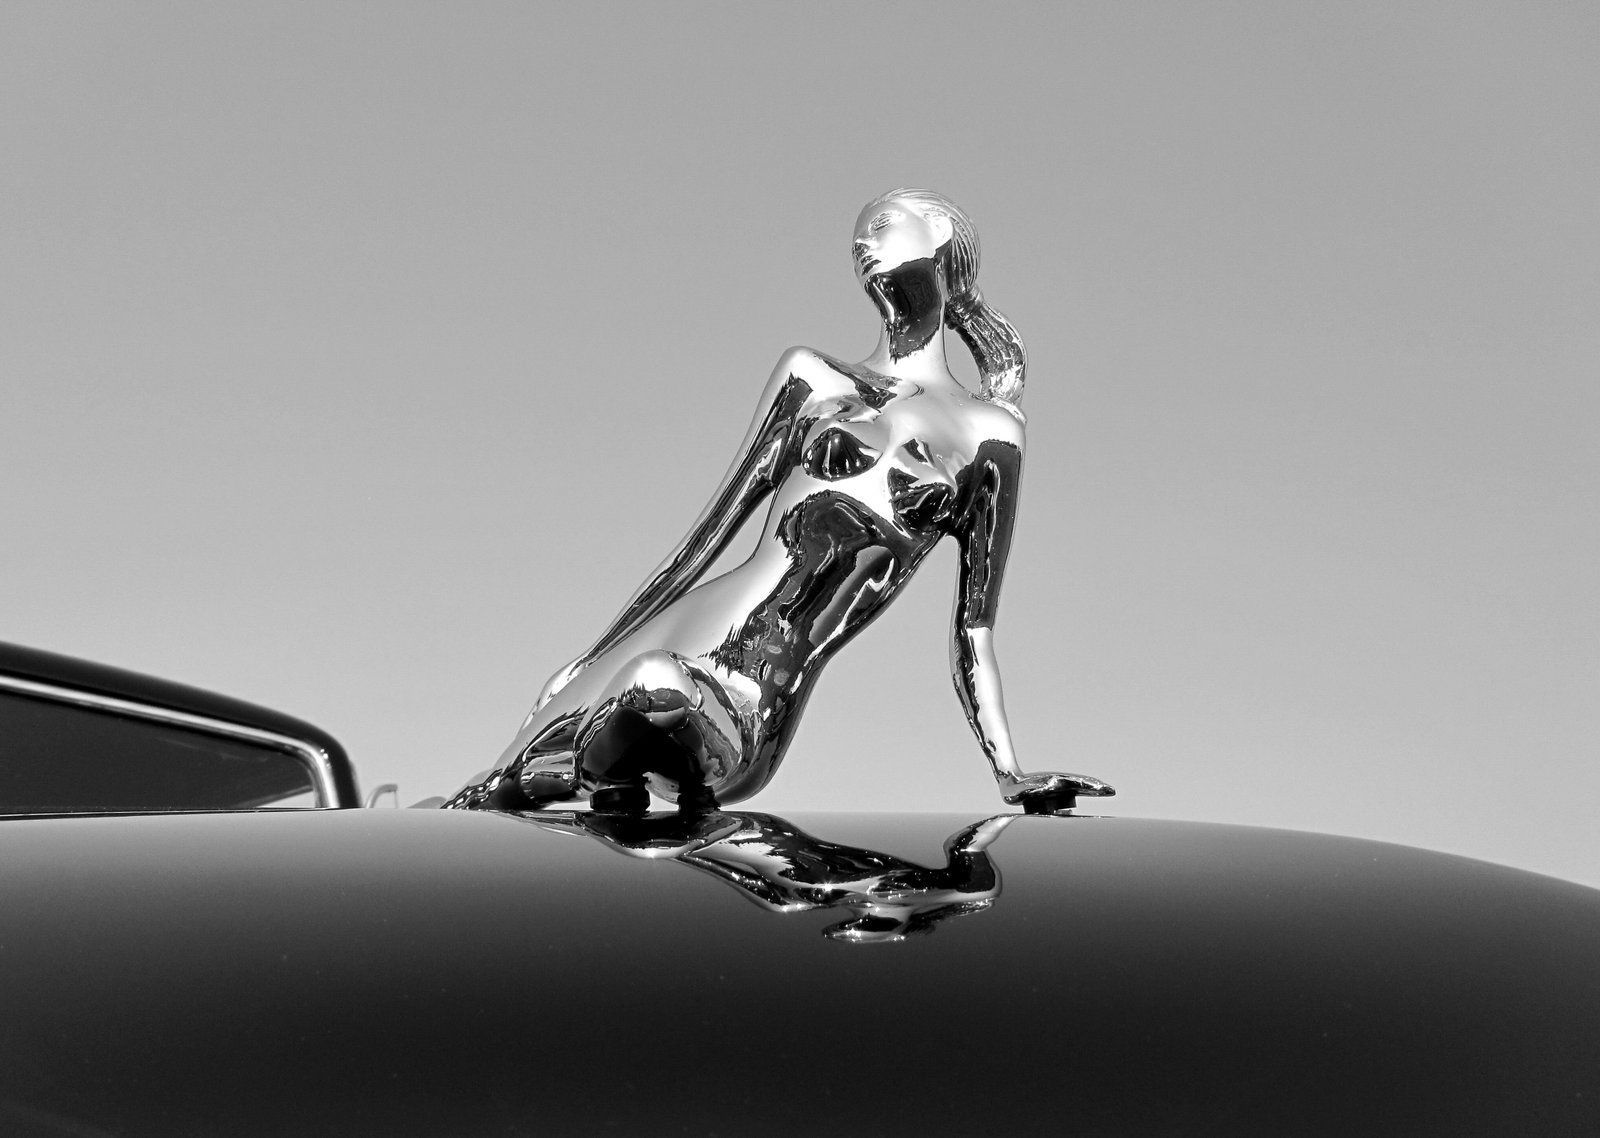 Falcon hood ornament - A Spectacular Casting Of A Reclining Nude Woman Finished In Highly Polished Chrome Adorning The Hood Of A 1948 Lincoln Continental With A Deep Black Paint